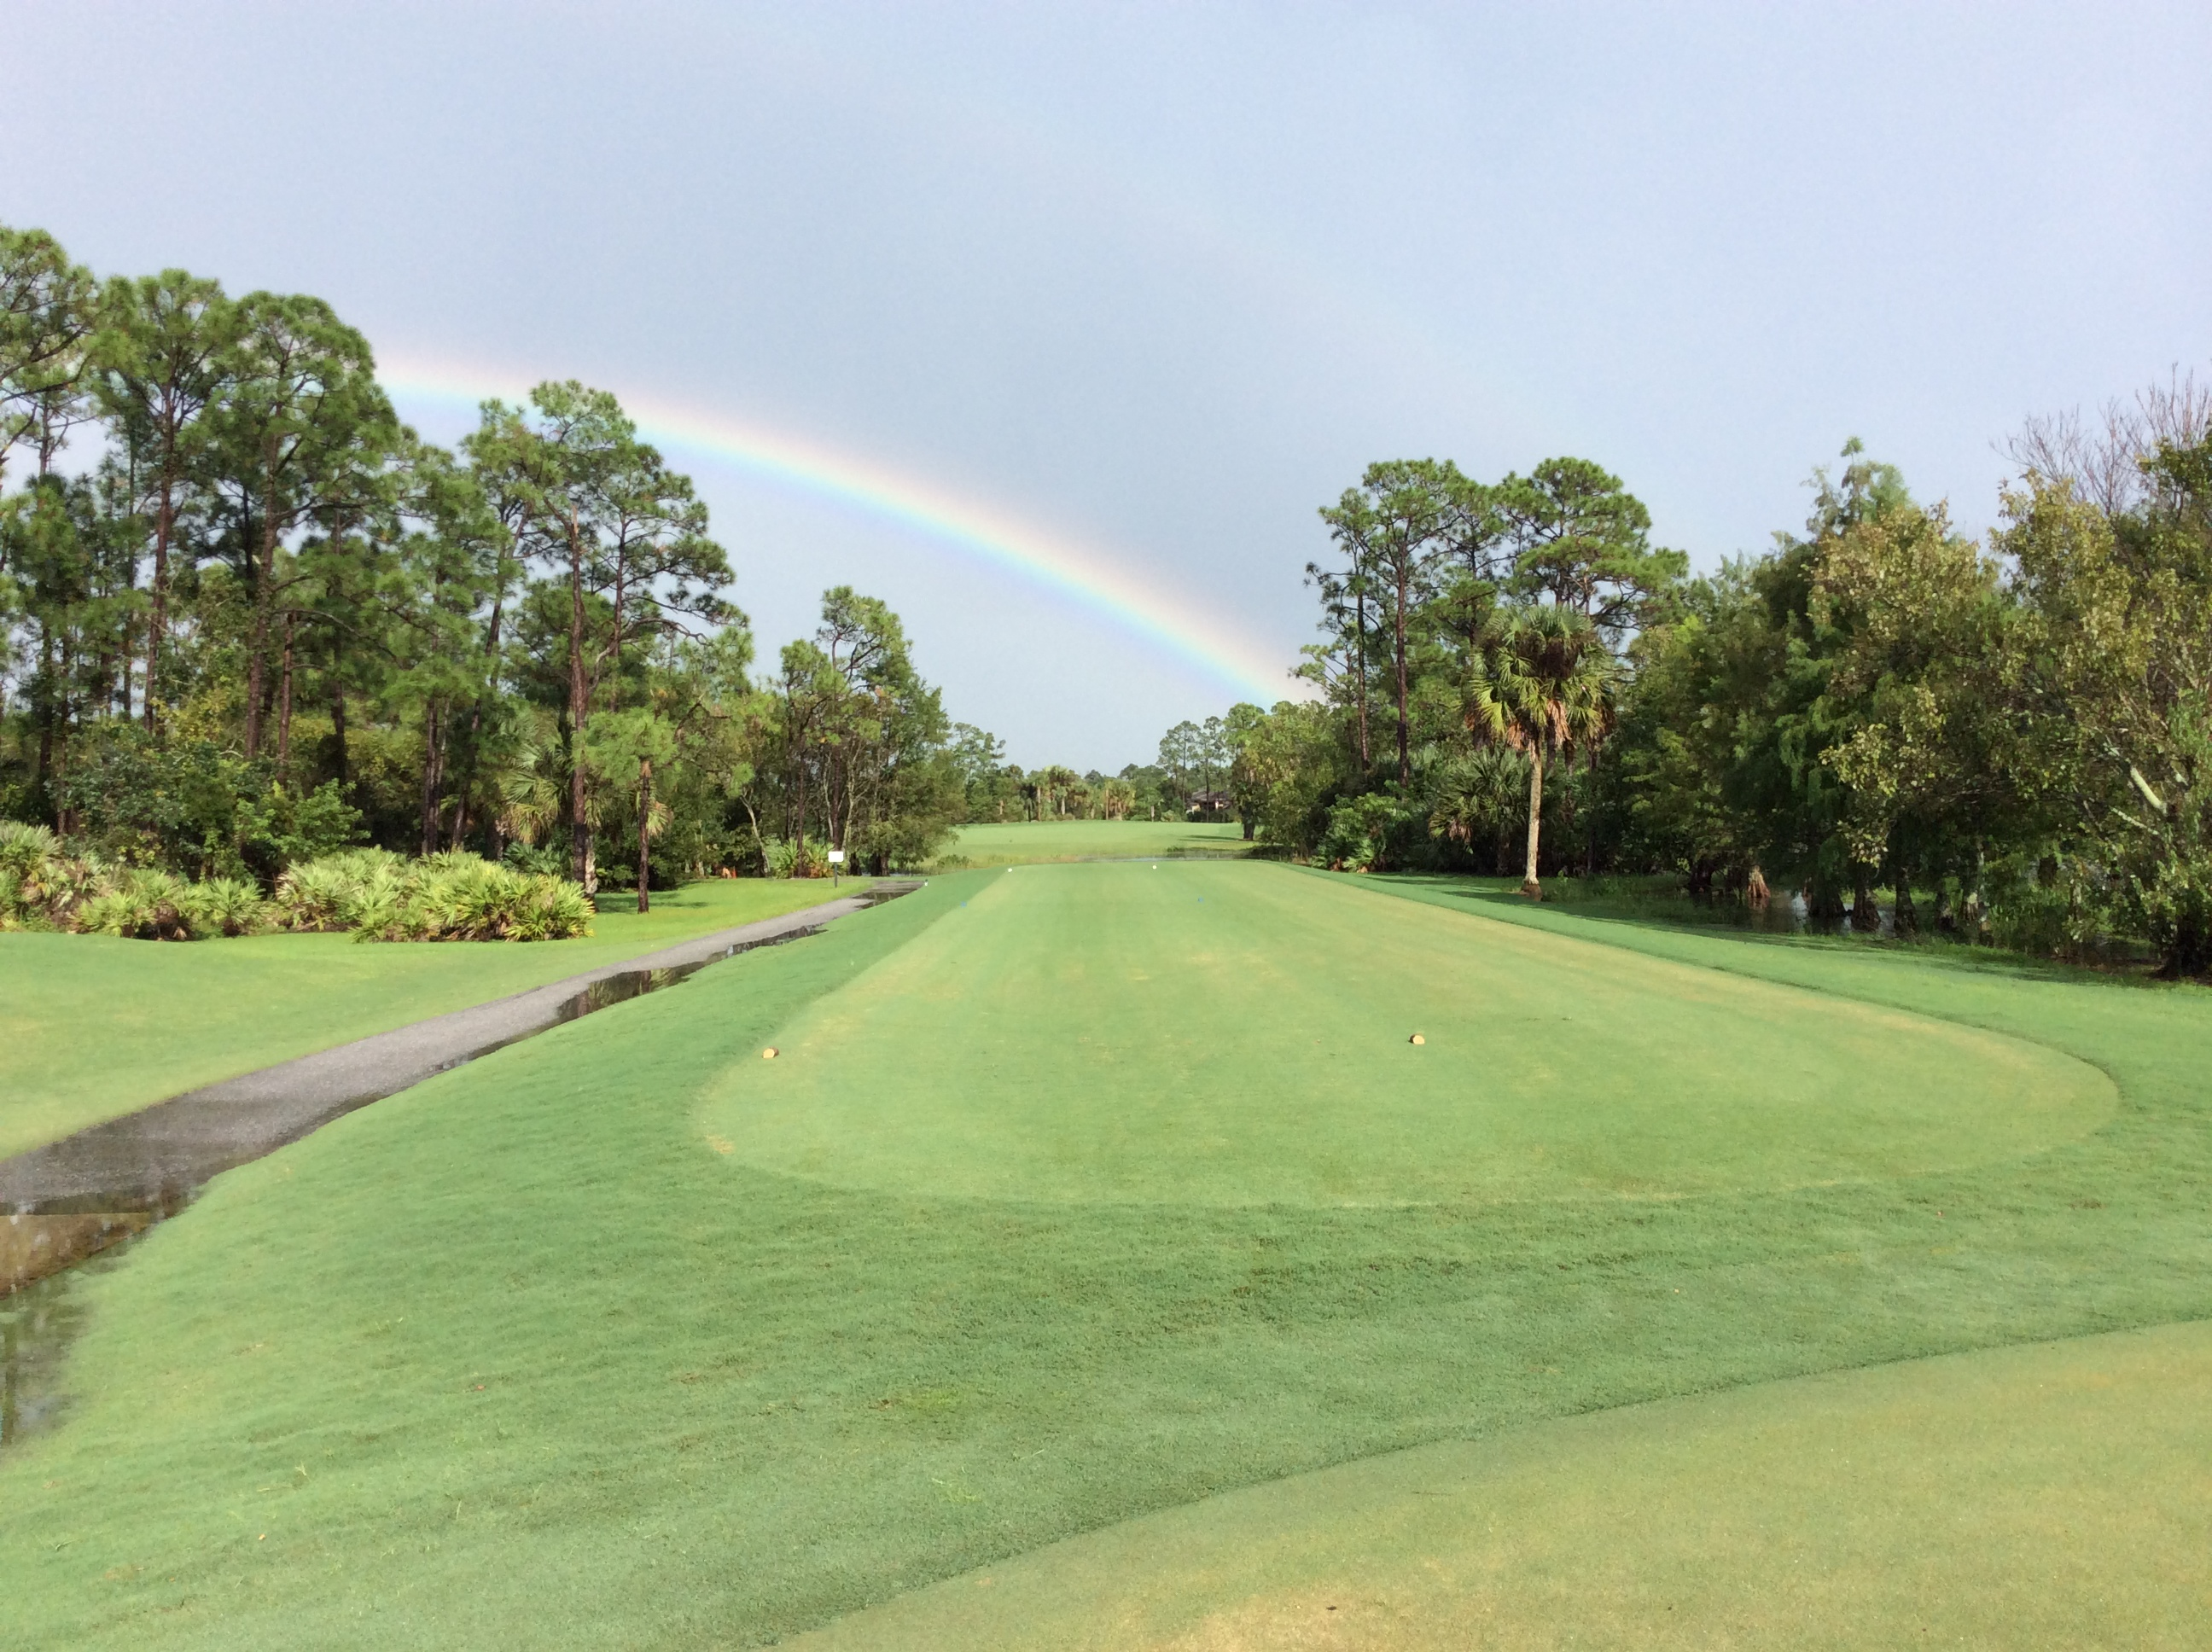 Rainbow Over Hole 1 at Sandhill Crane Golf Club.